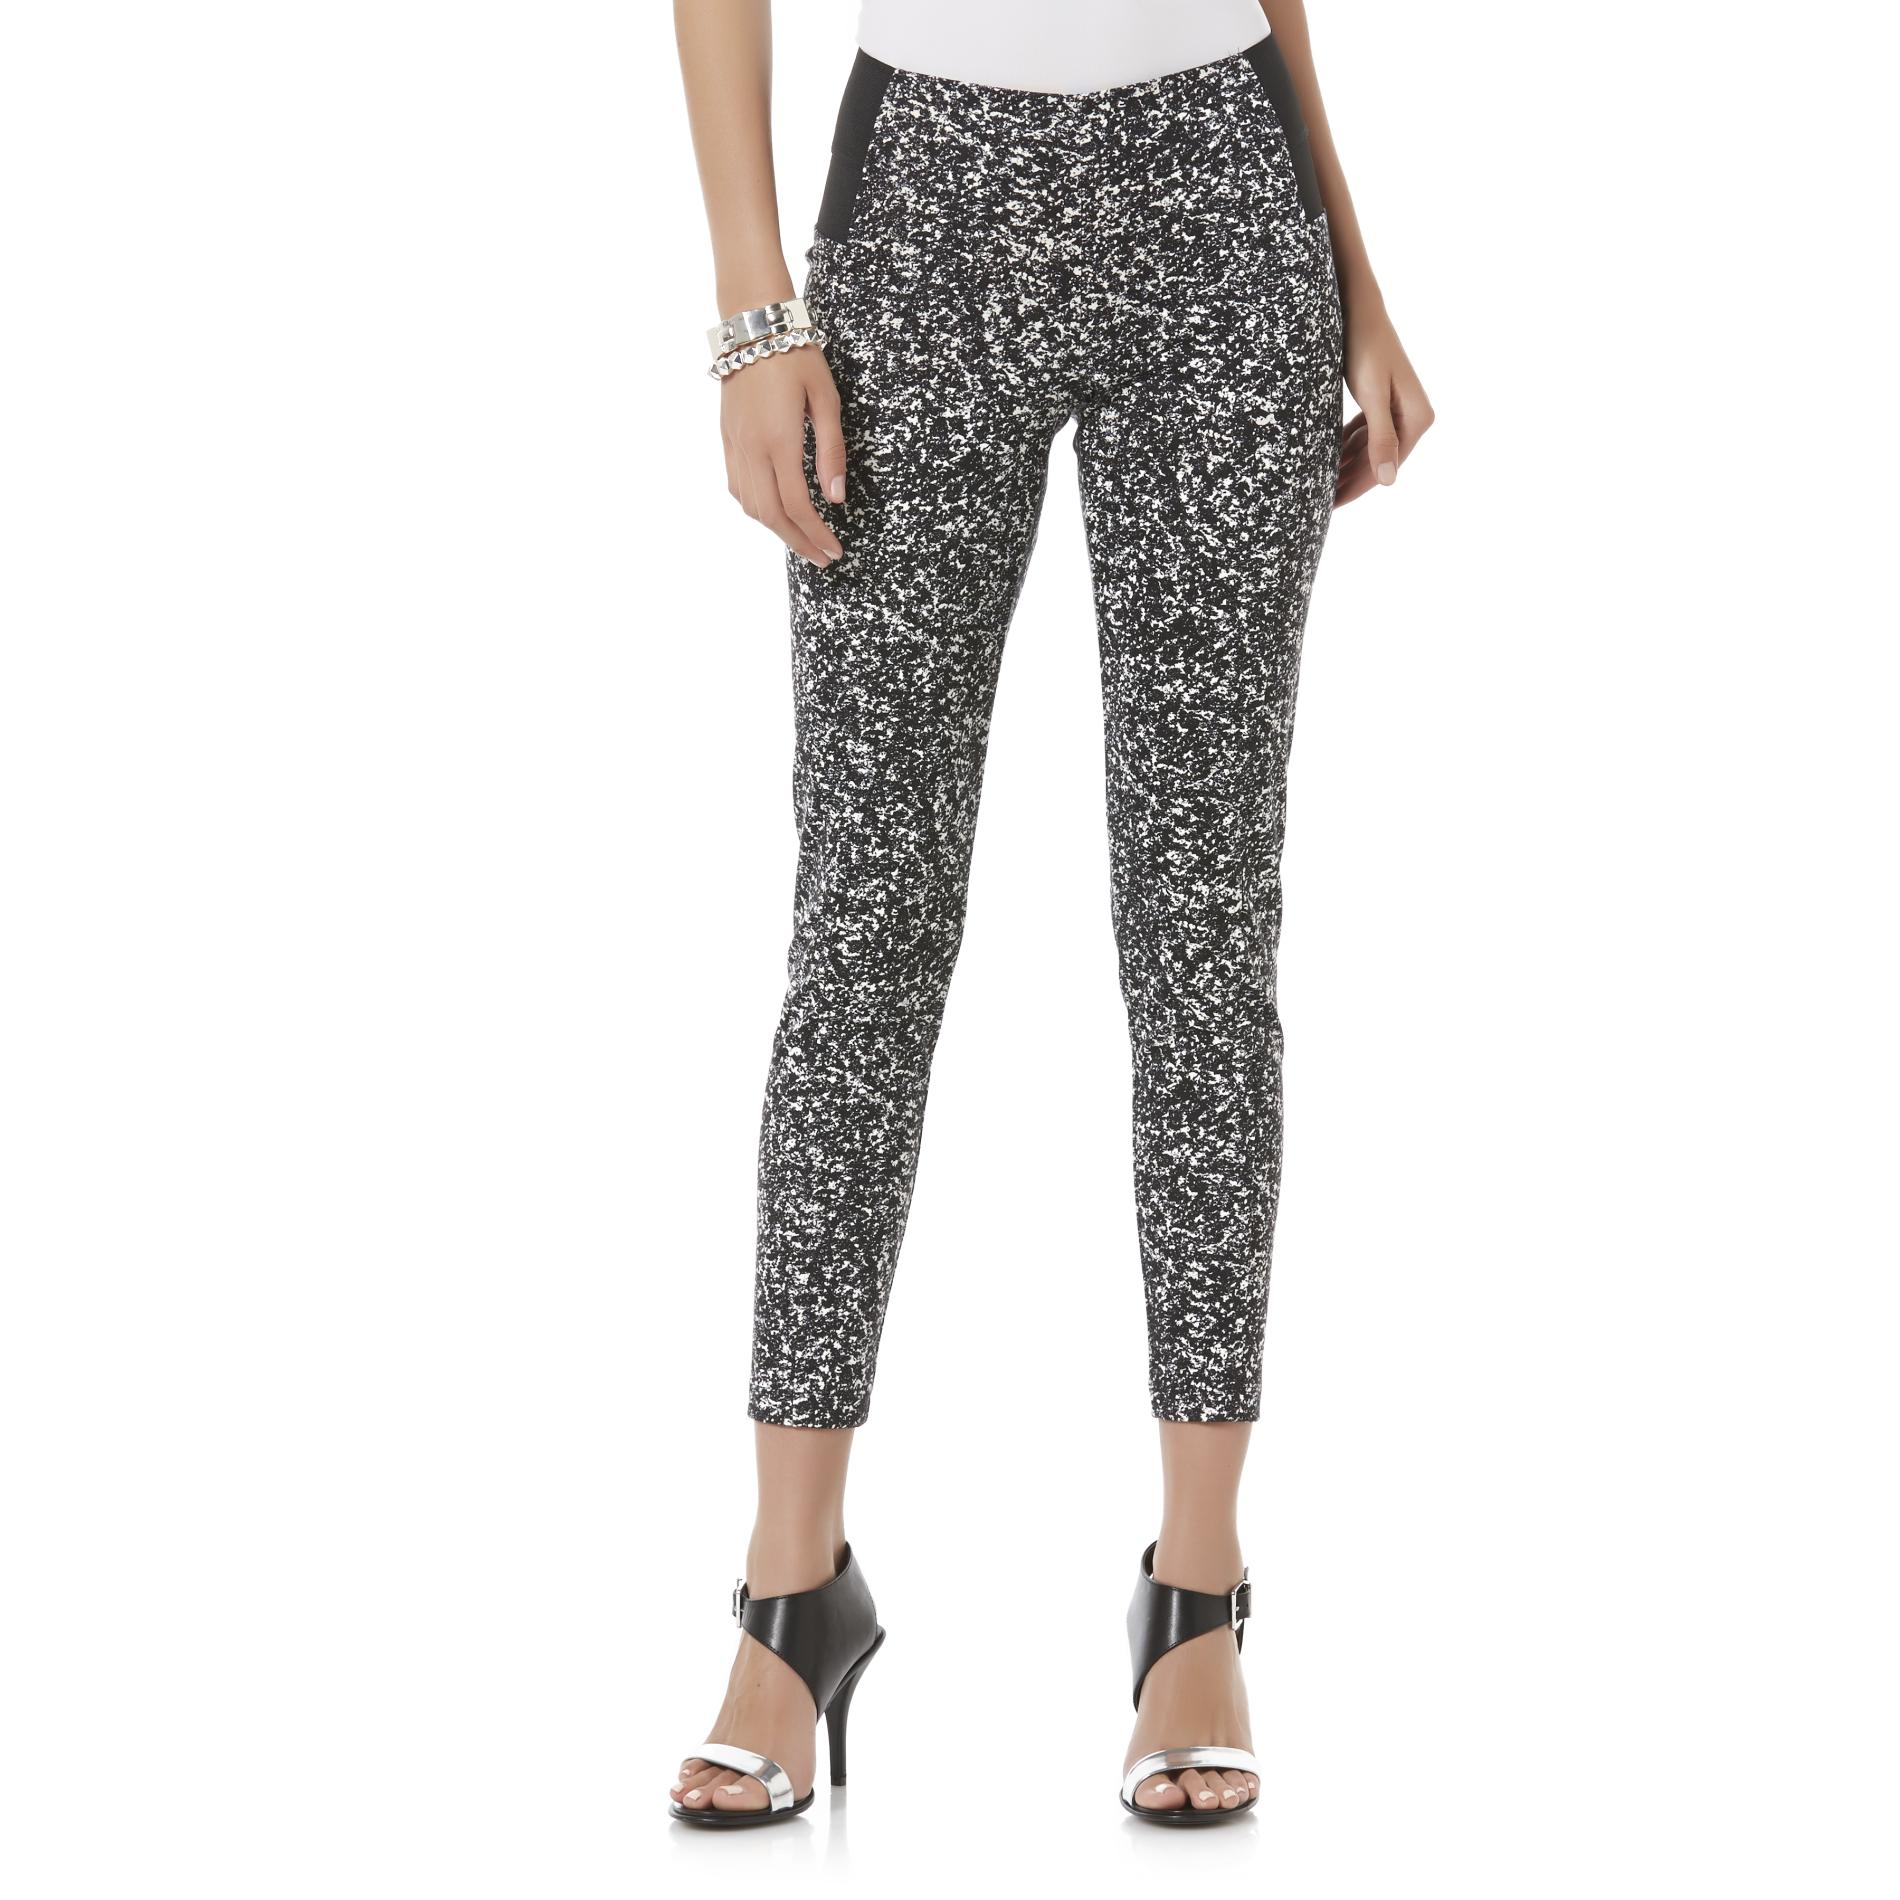 Attention Women's Knit Pants - Abstract